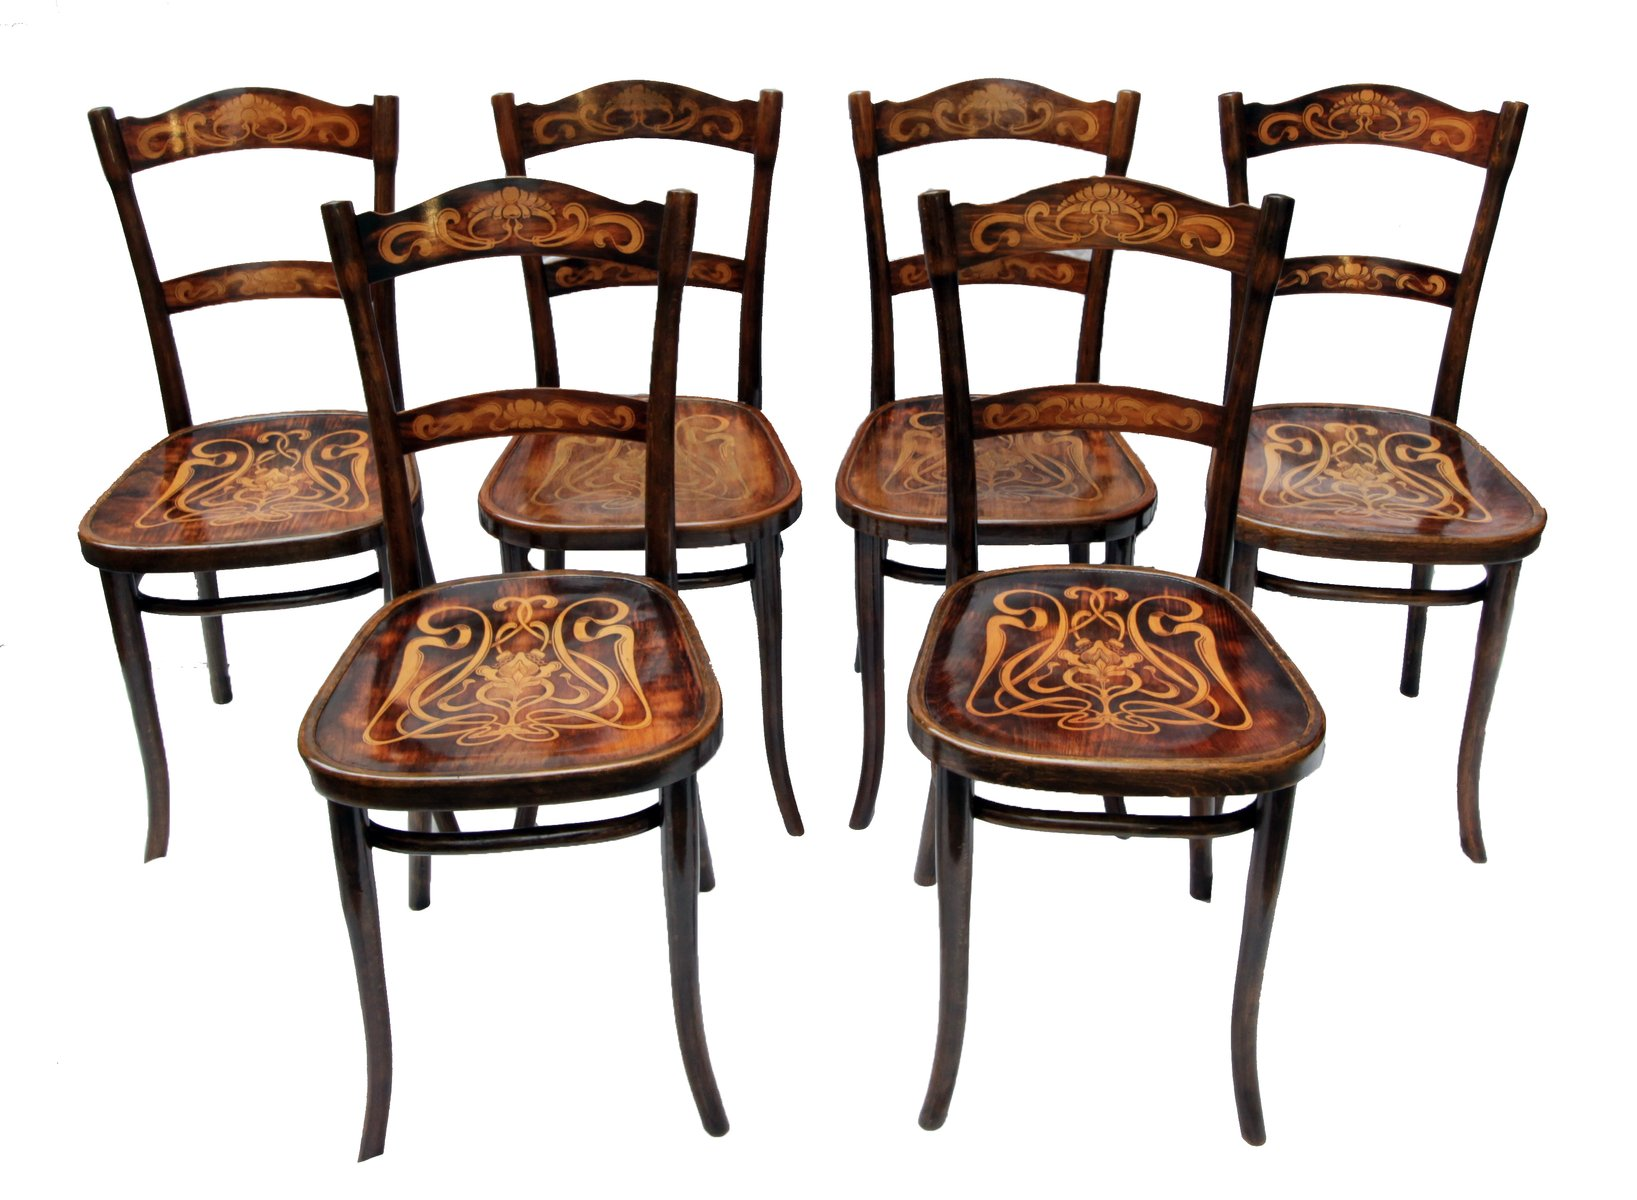 bentwood dining chair 10 table set antique decorated chairs from thonet of 6 for price per